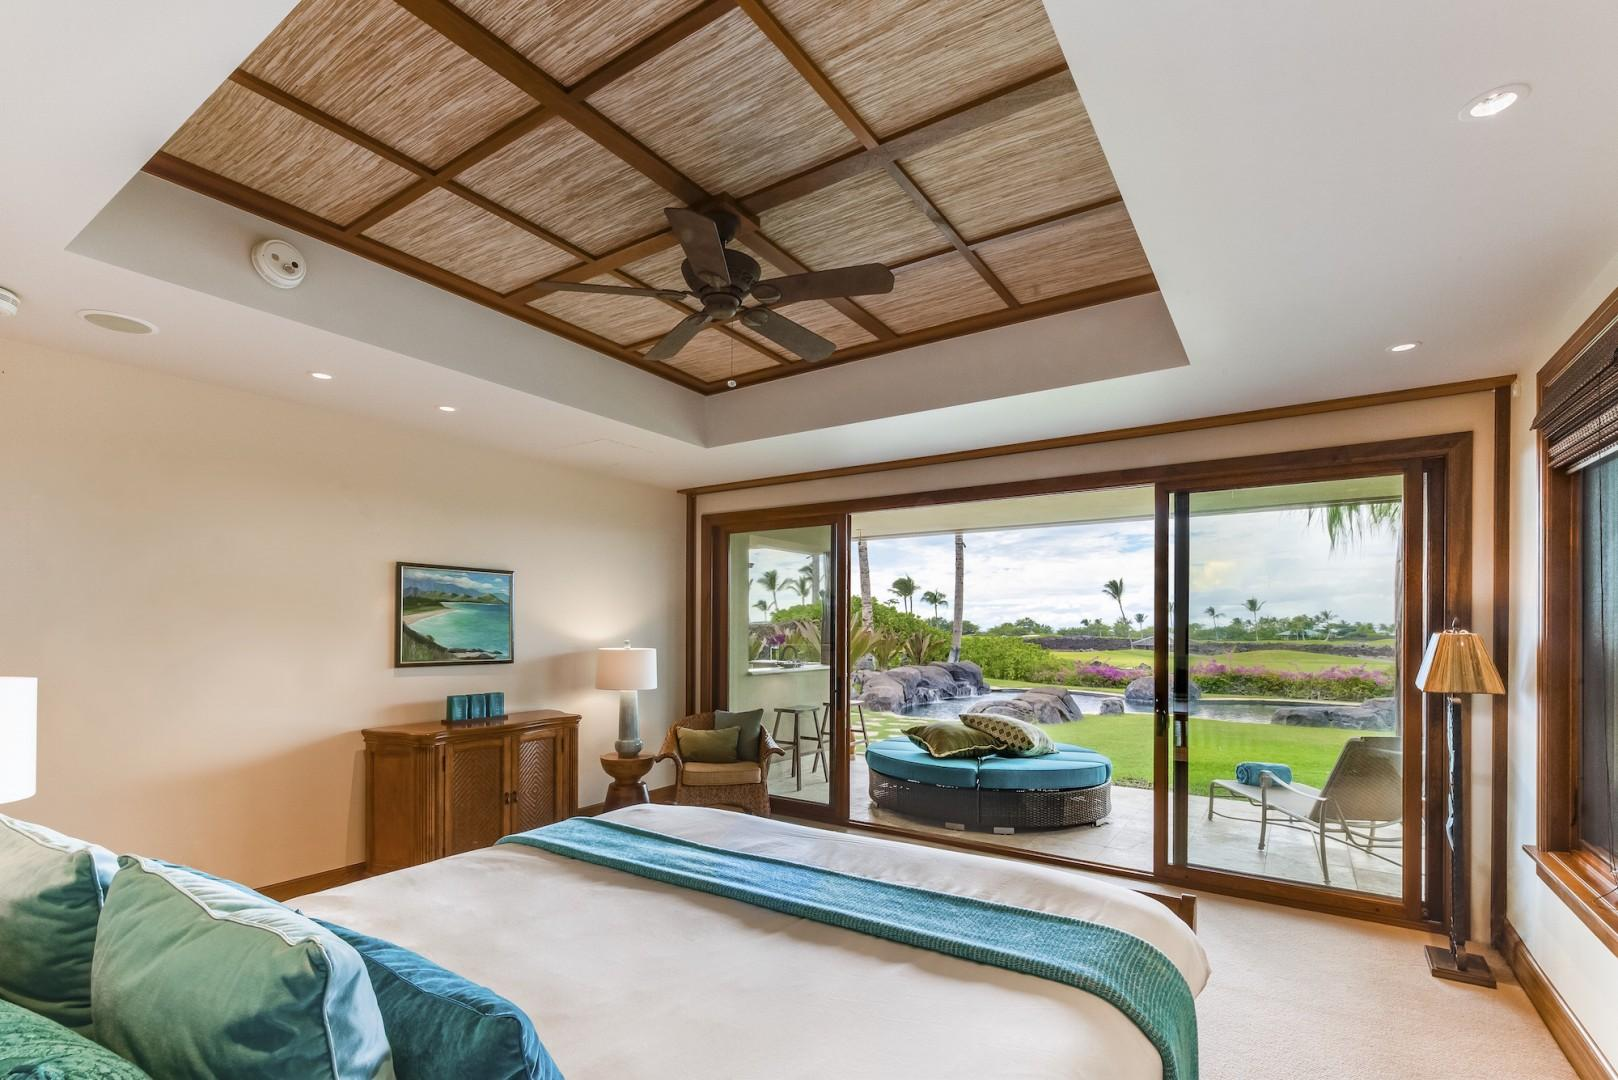 Downstairs Master Bedroom w/ Electronic Pocket Doors Open to Separate Lanai and Pool Area.